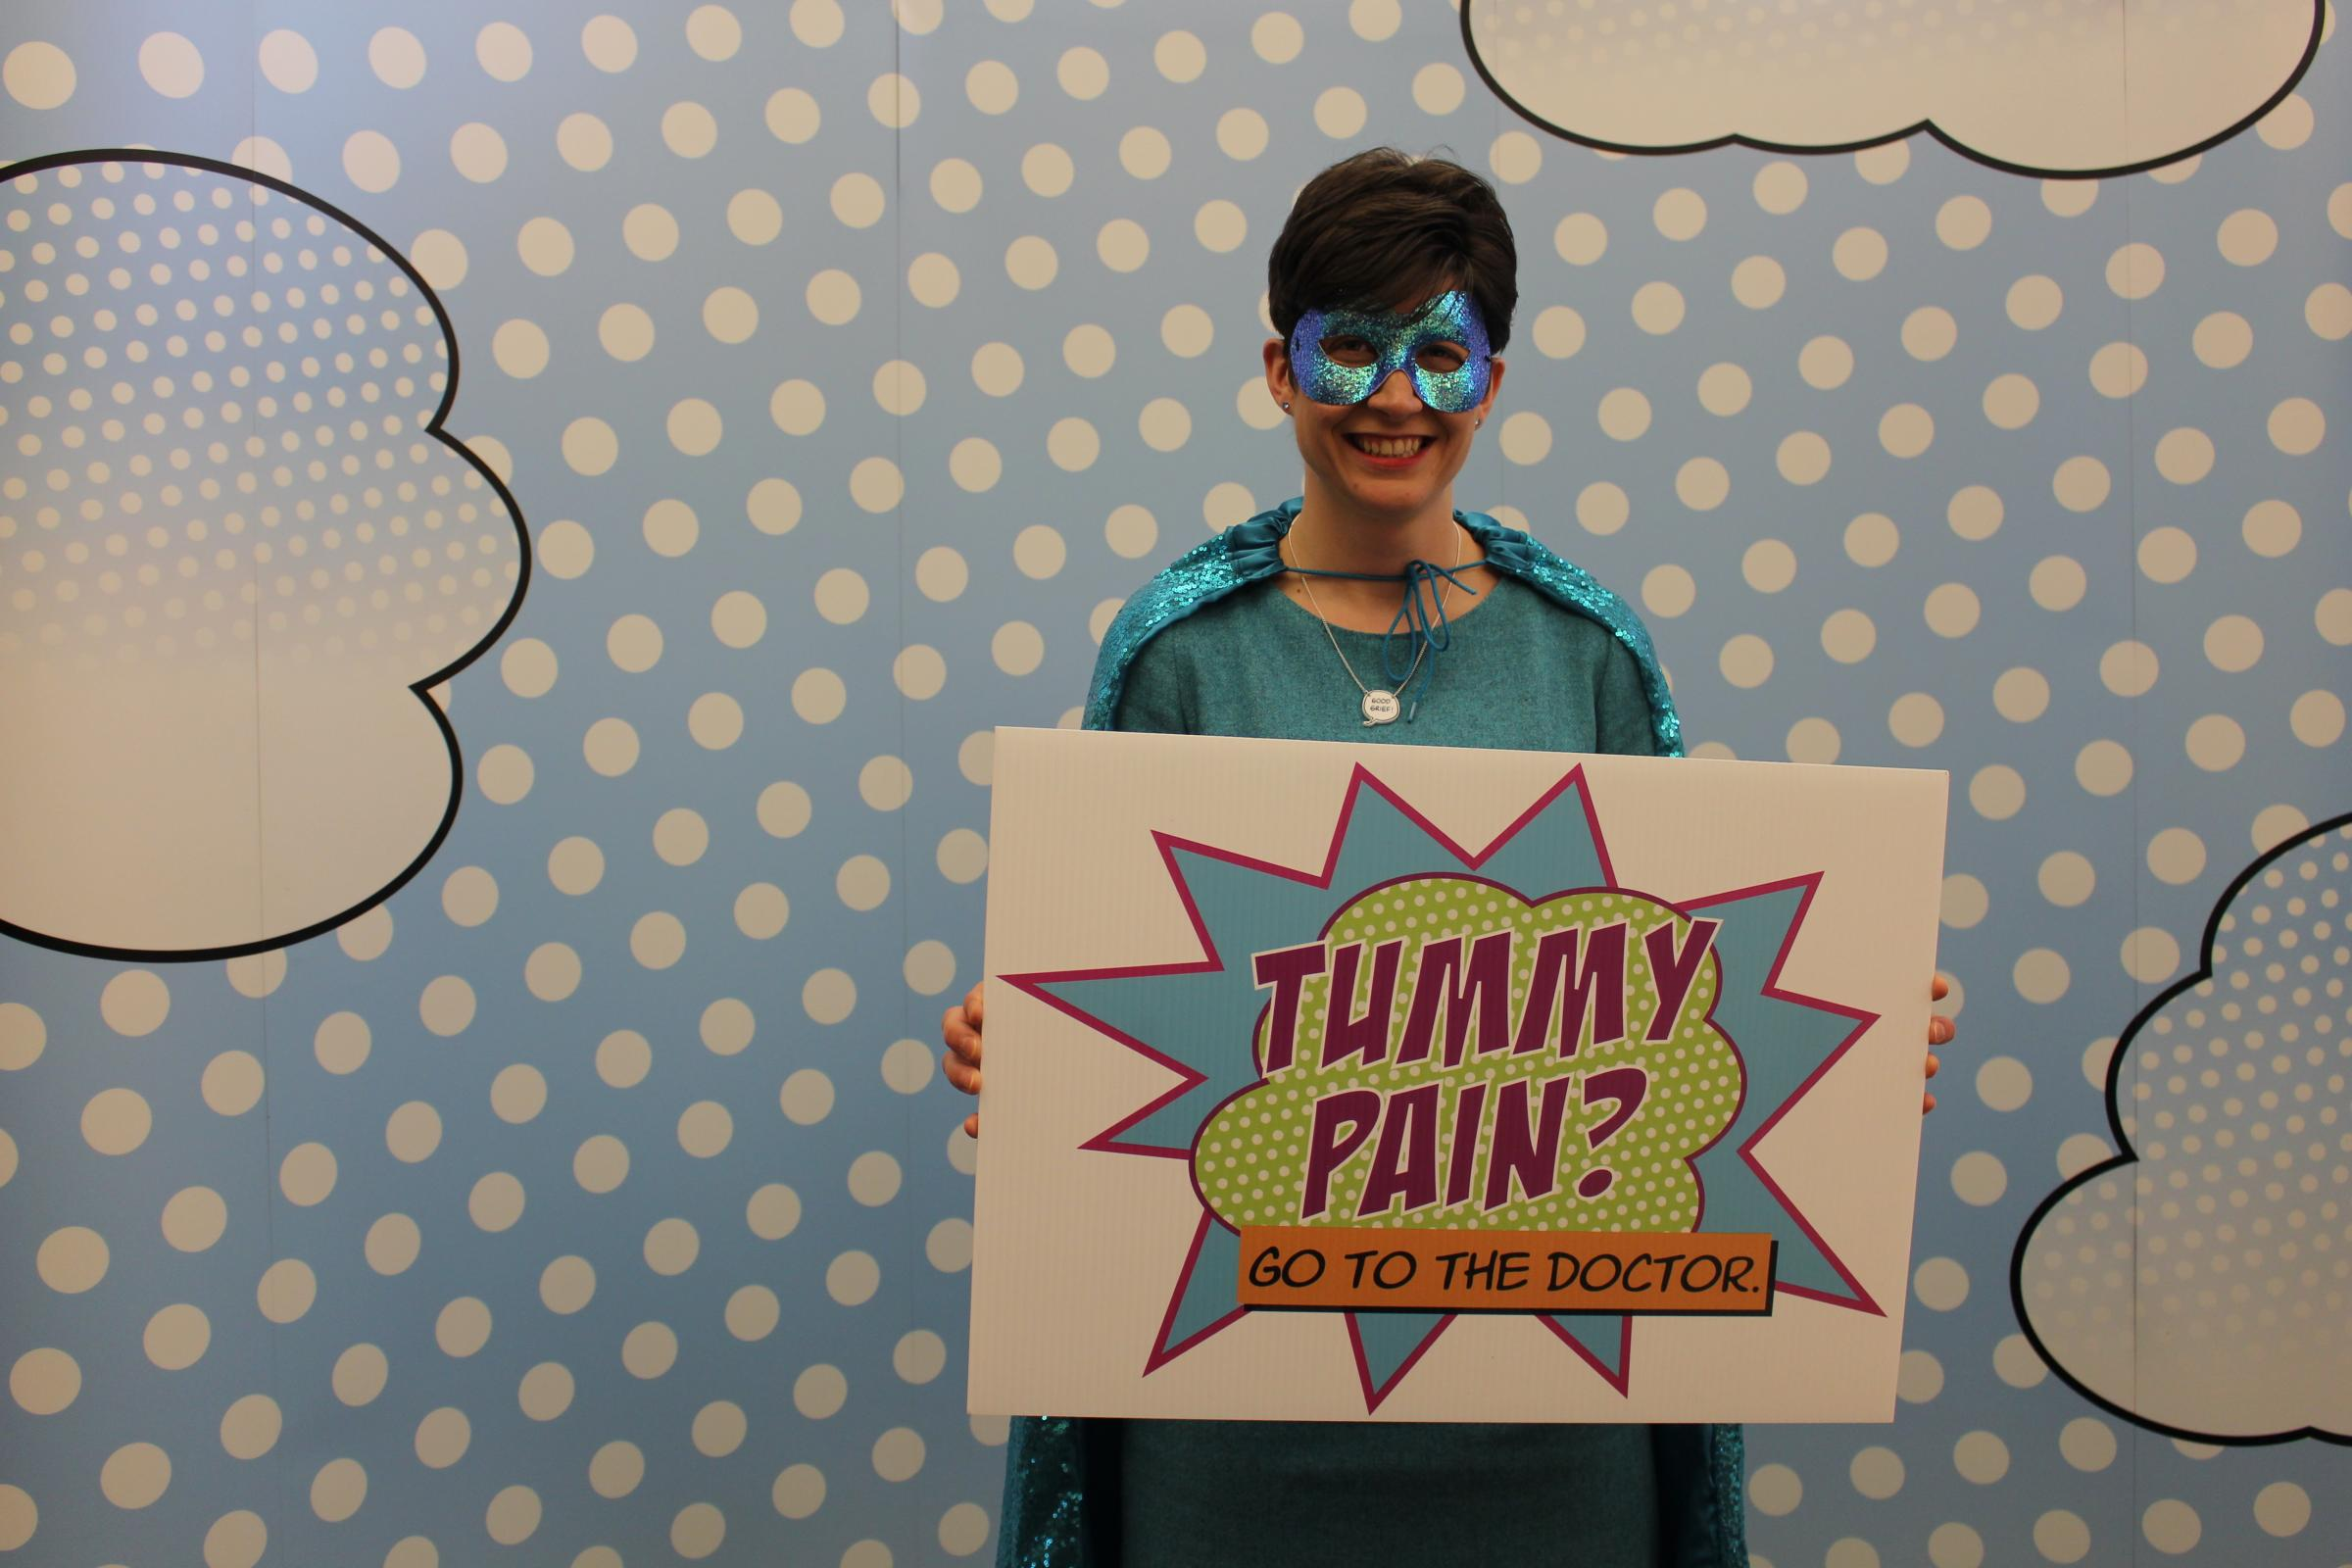 Glasgow MP Alison Thewliss urges women to be aware of ovarian cancer symptoms